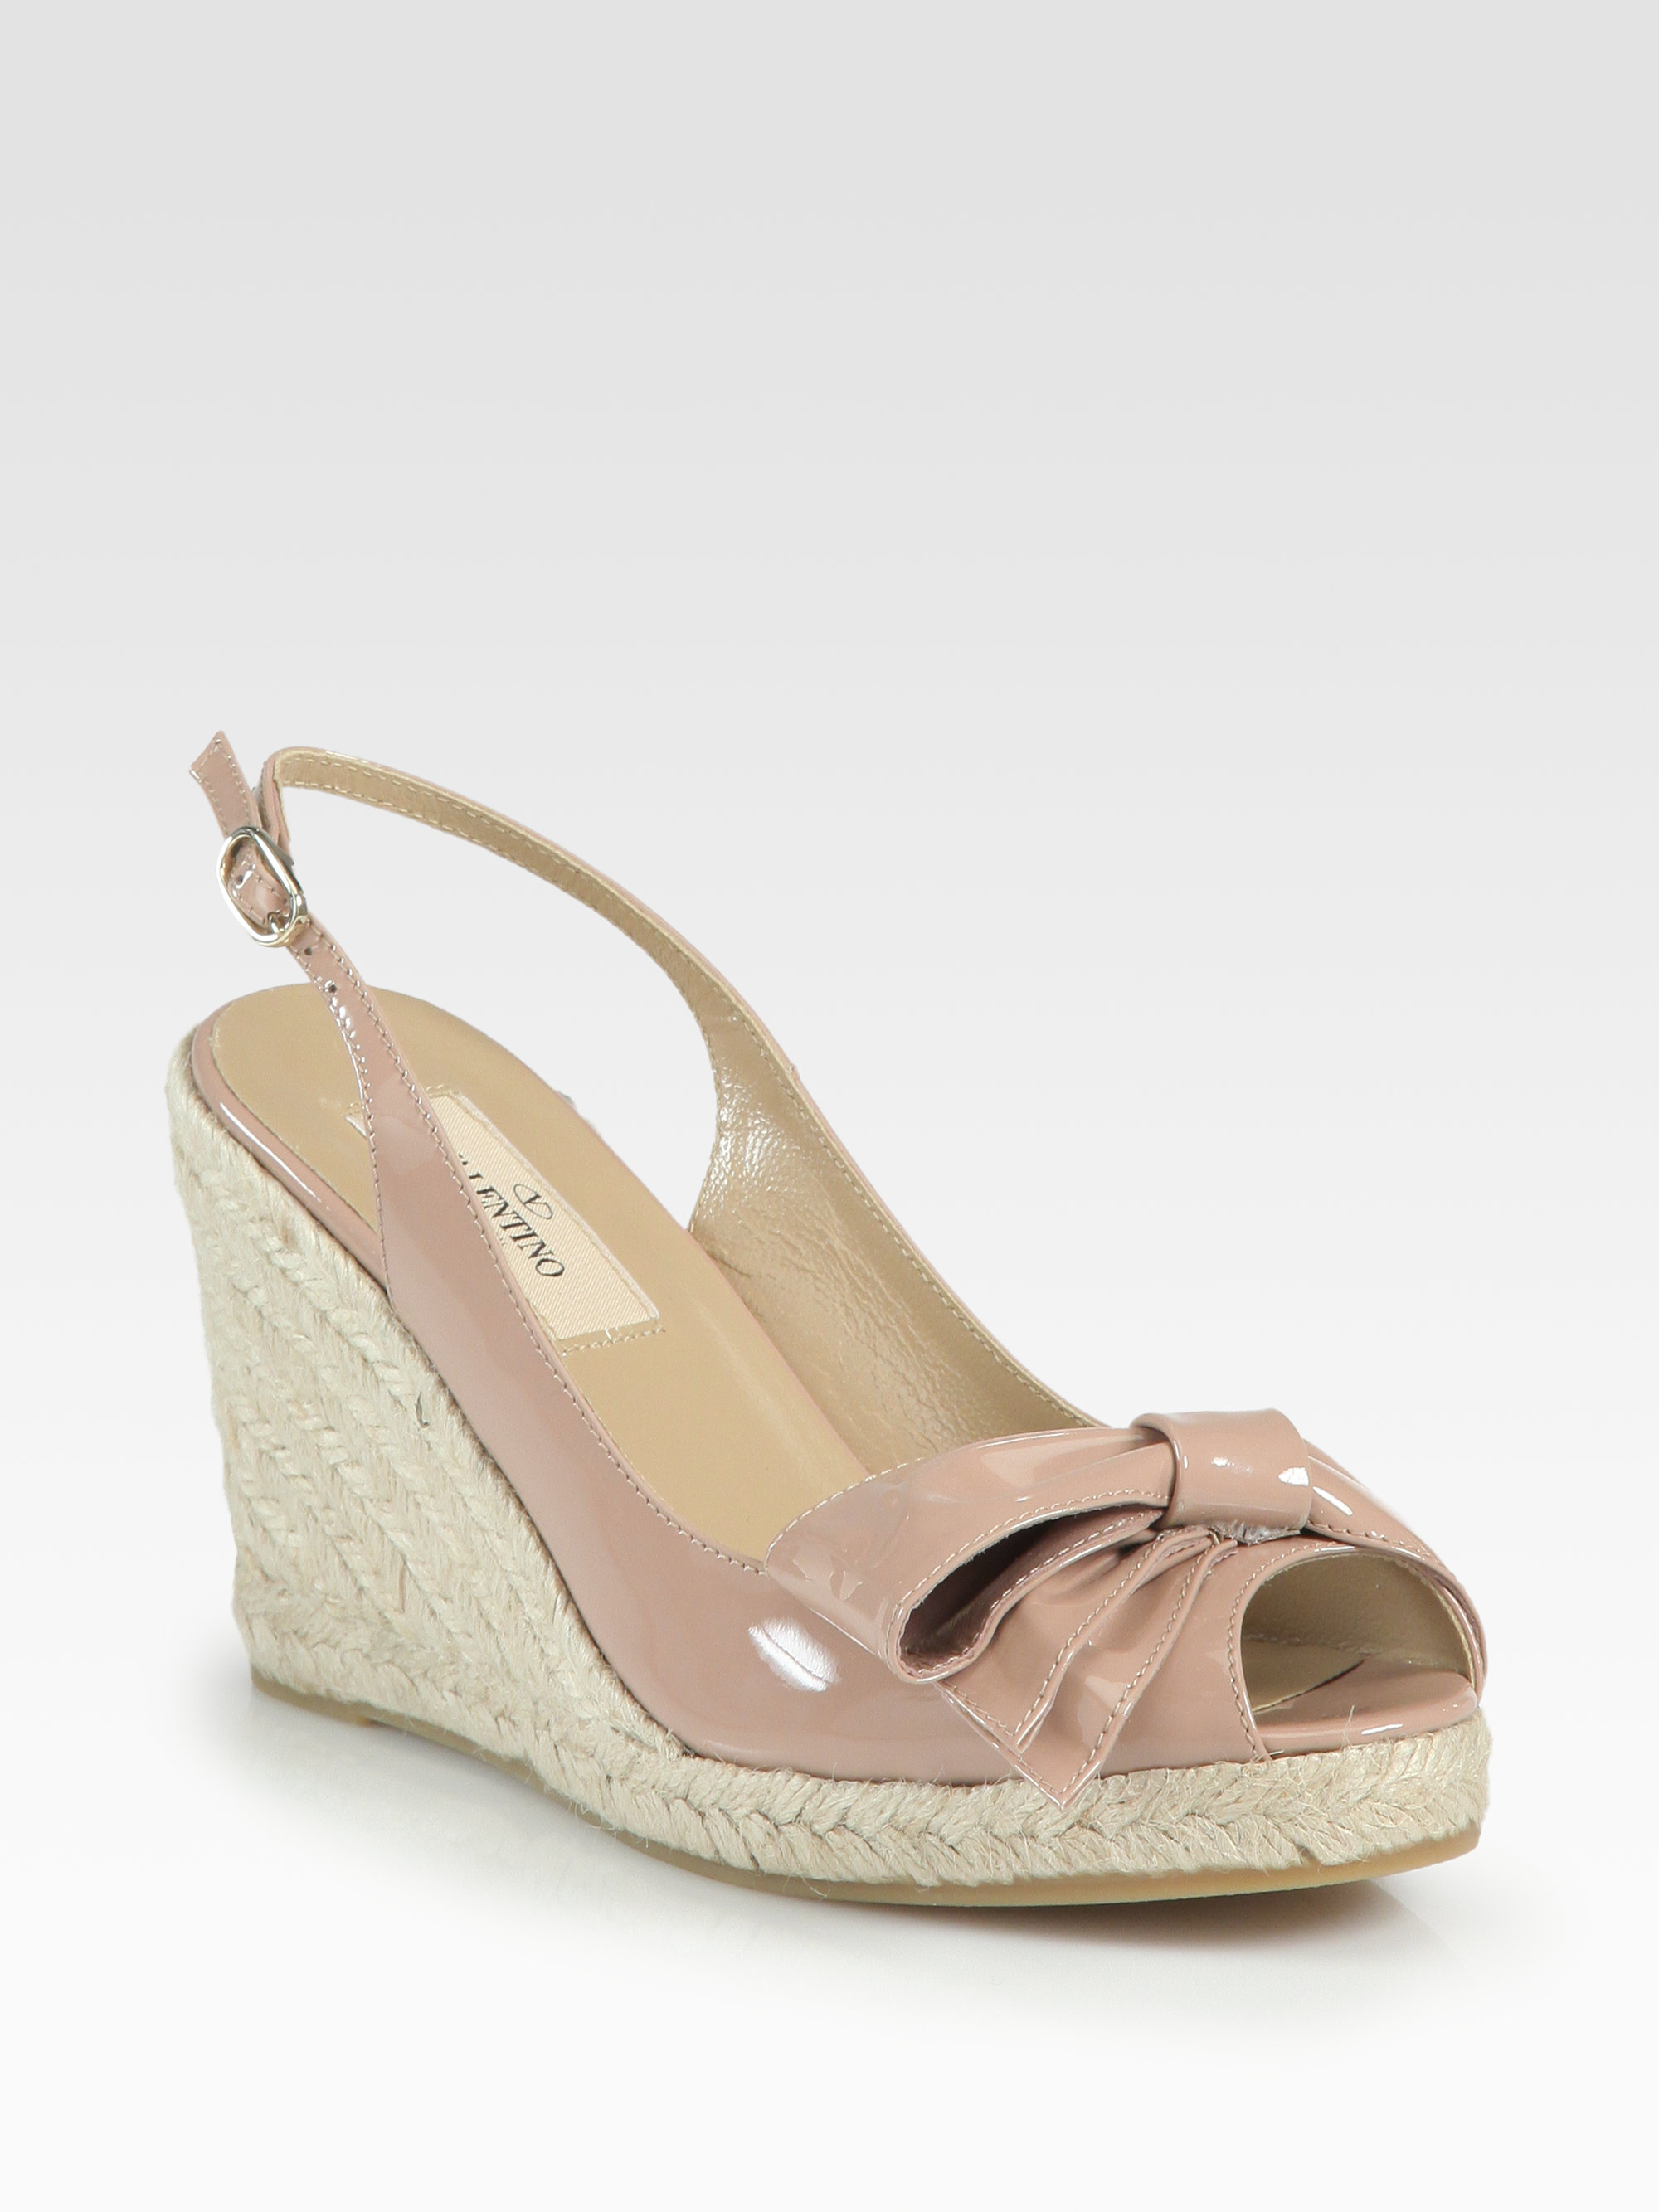 6a8822bea4b Valentino Green Mena Patent Leather Espadrille Wedge Sandals